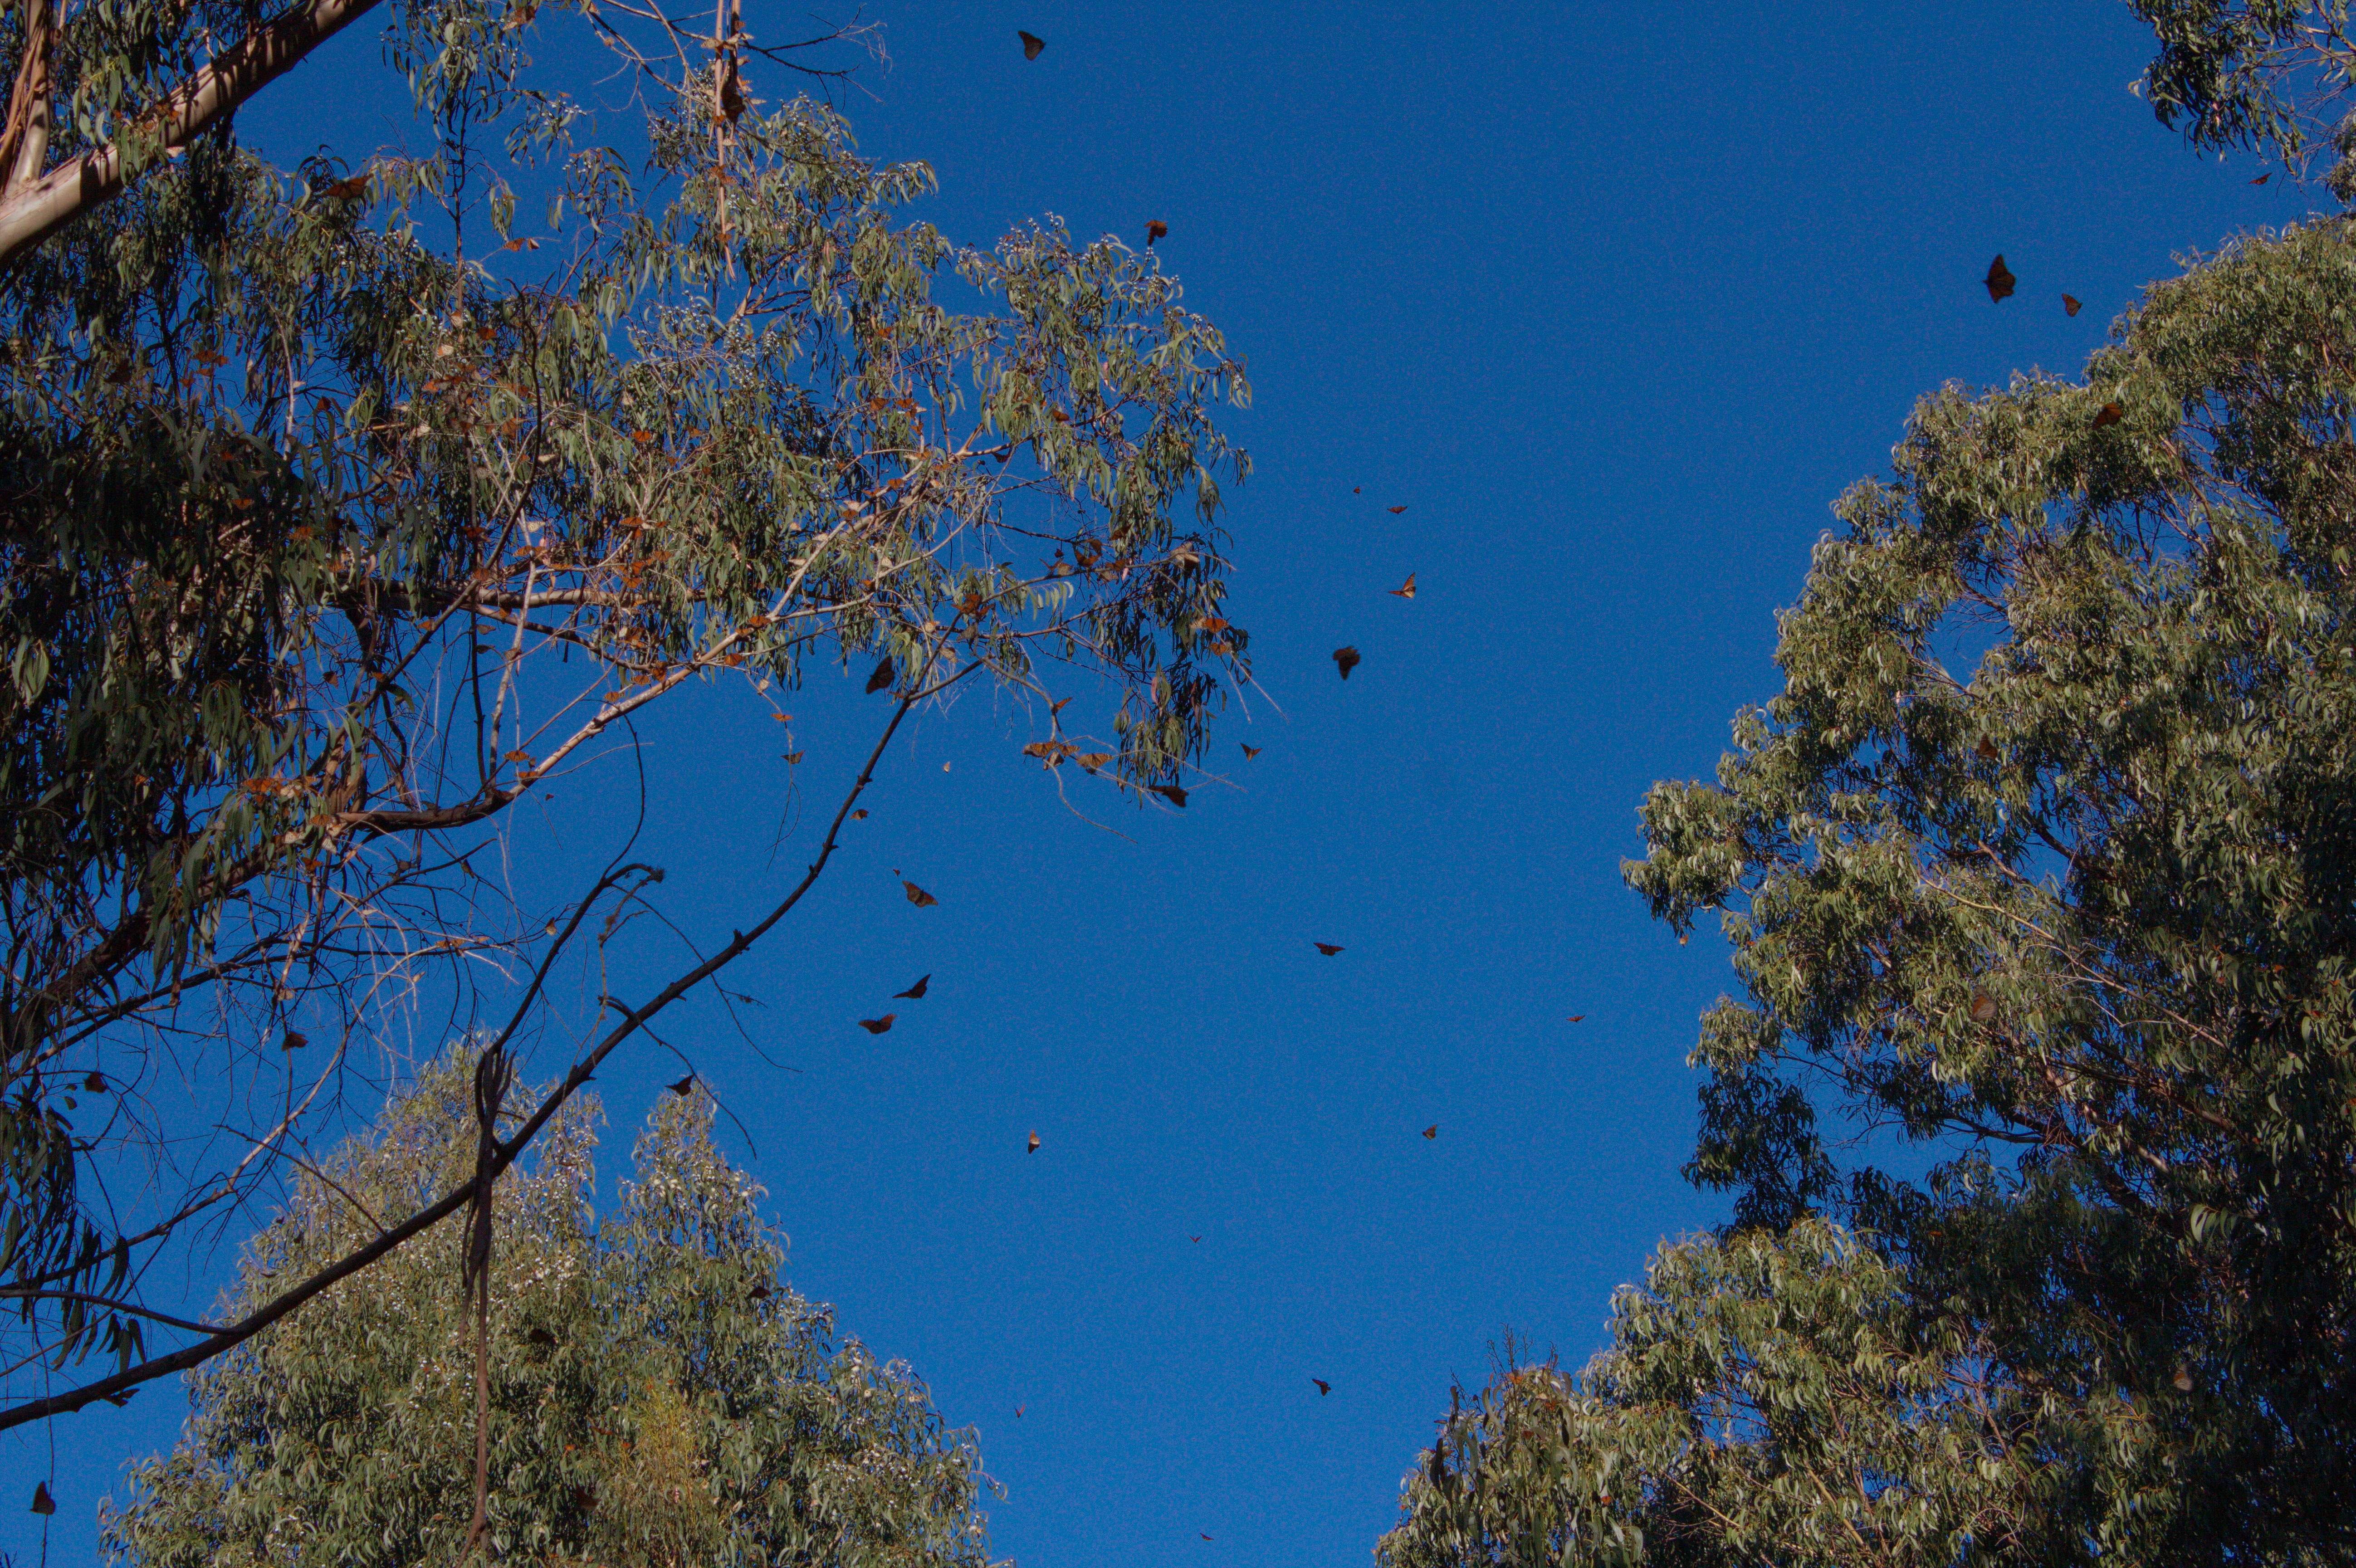 In this upward-facing image, trees laden with monarchs stand against a deep blue sky. Some bright orange monarchs are also shown in flight.